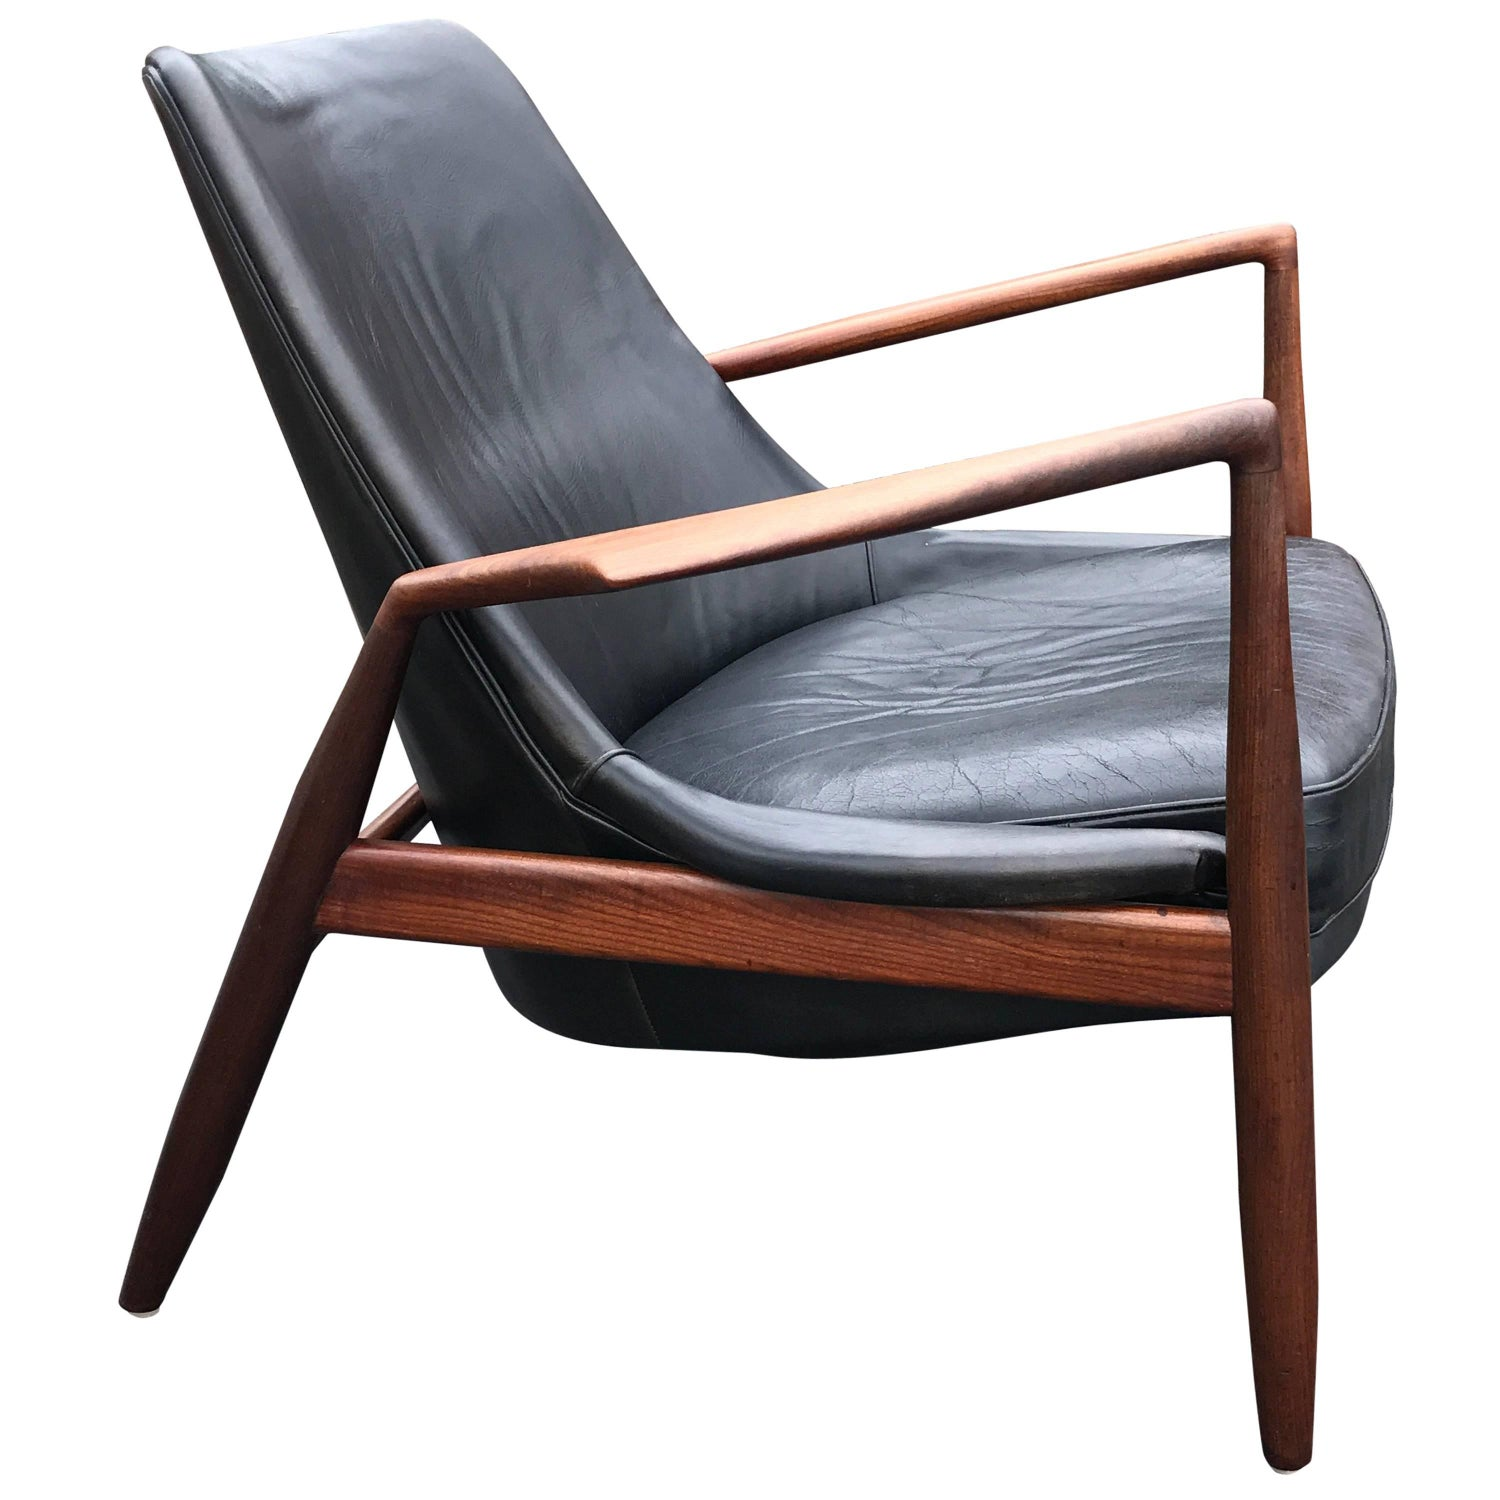 Wooden easy chair models - Seal Lounge Chair By Ib Kofod Larsen For Ope Mobler Sweden 1960s